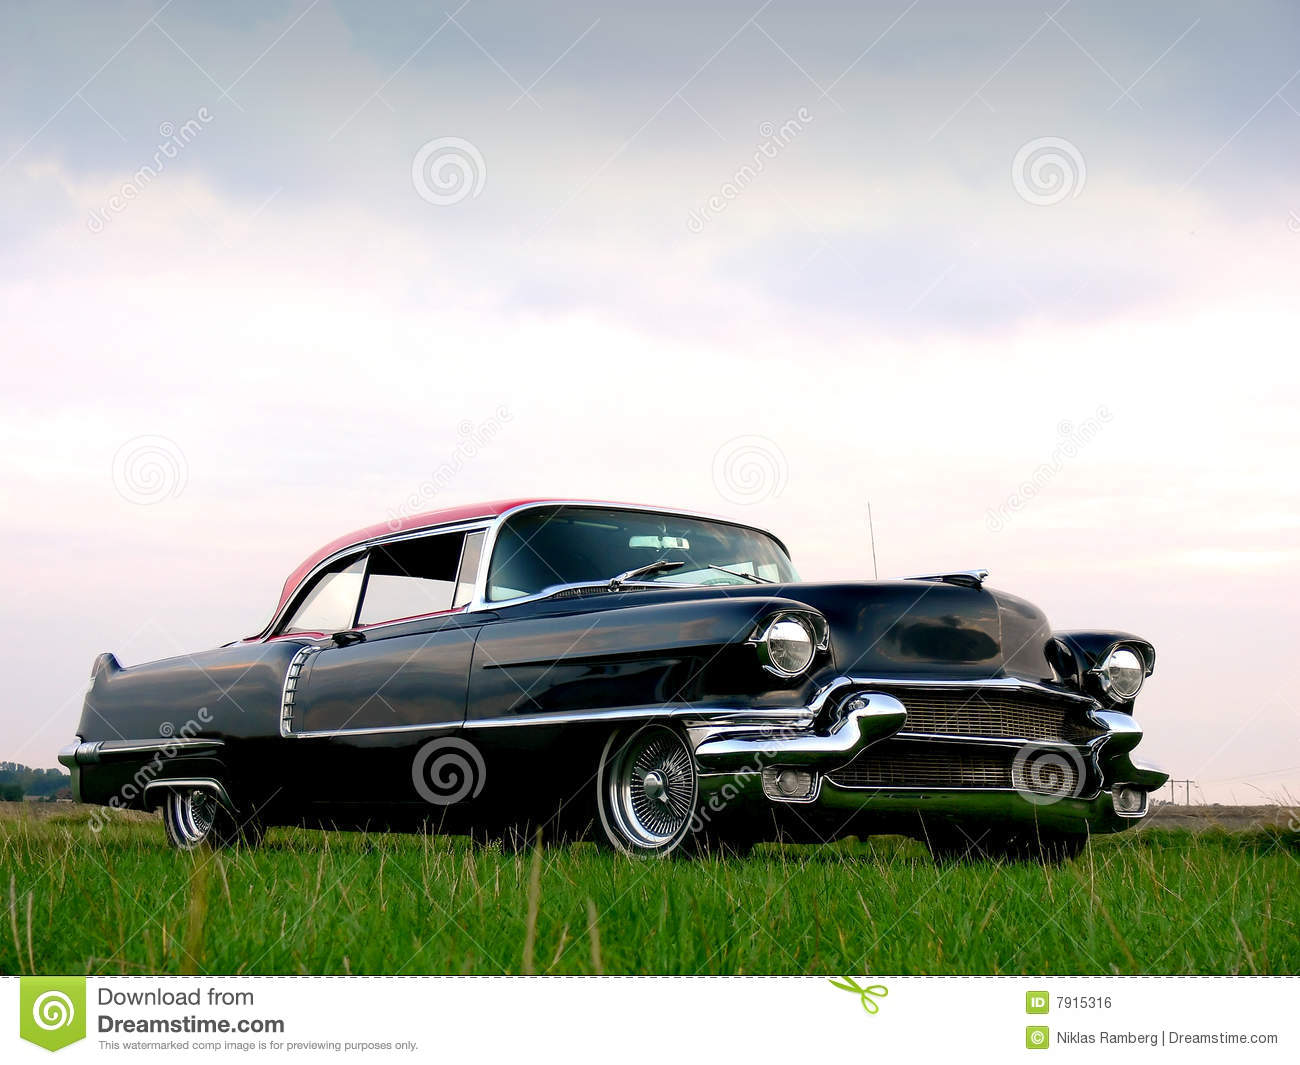 American classic black 1950s car royalty free stock for American classic automotive